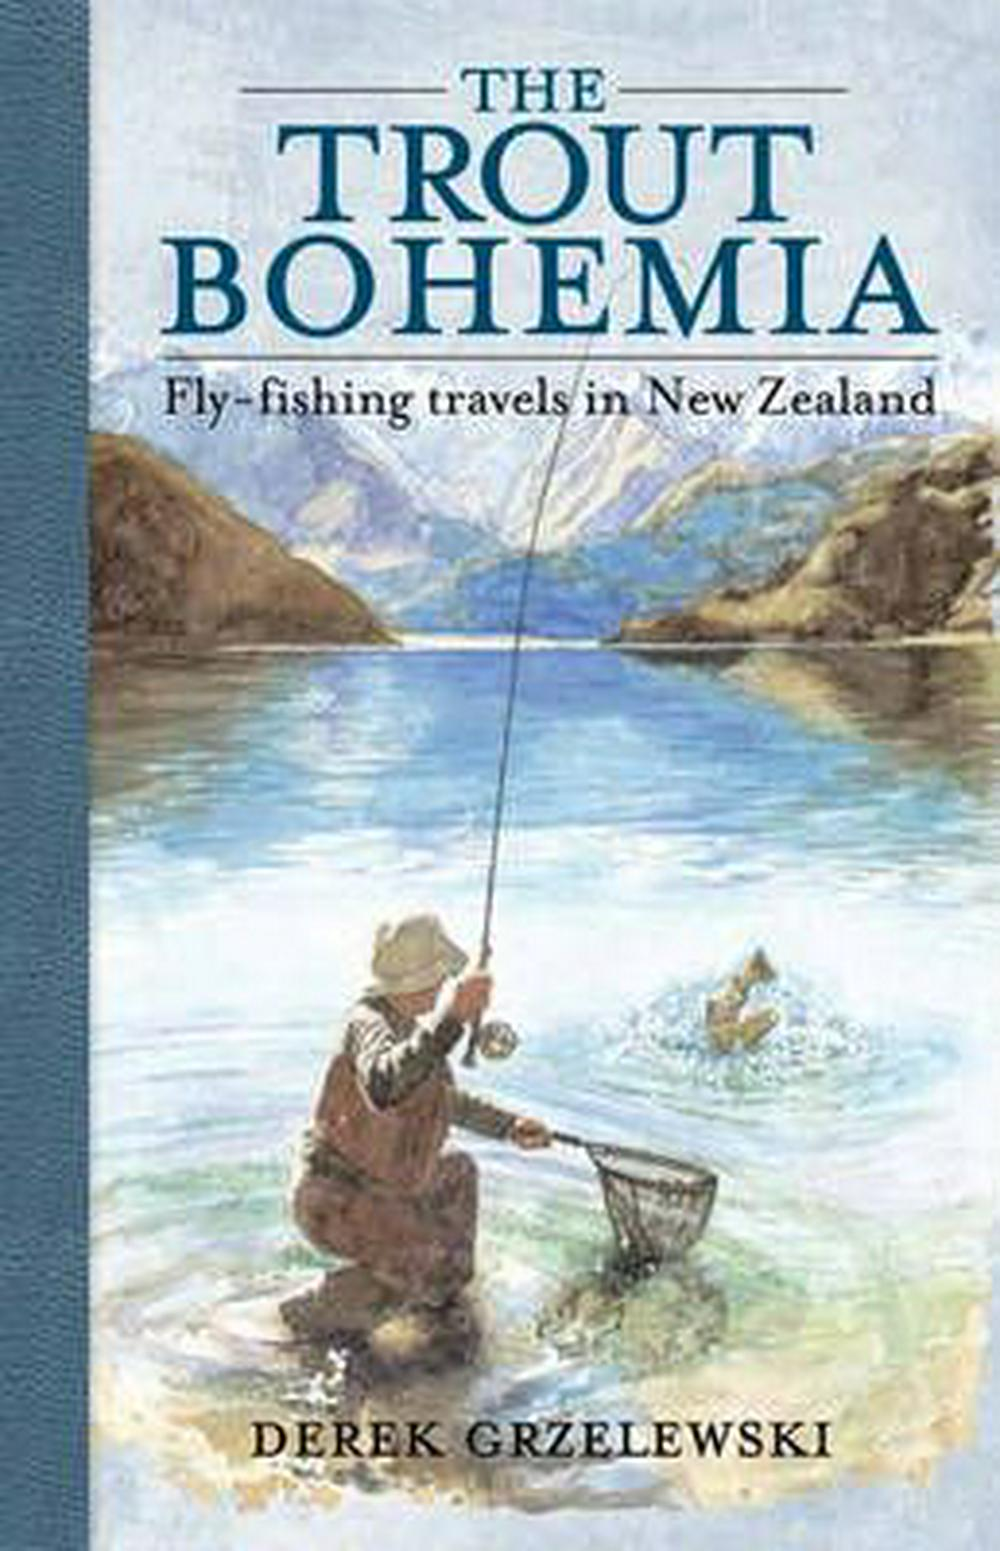 The Trout Bohemia by Derek Grzelewski, ISBN: 9781869538248